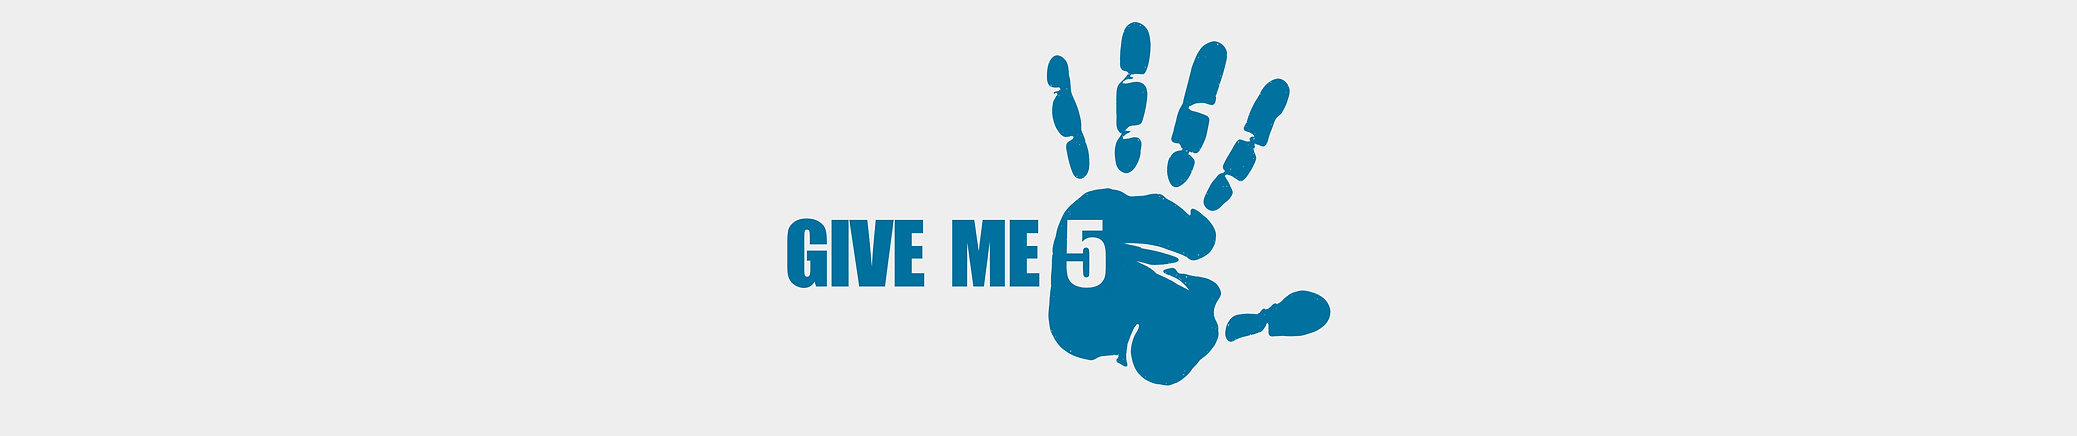 give me five image 1.jpg